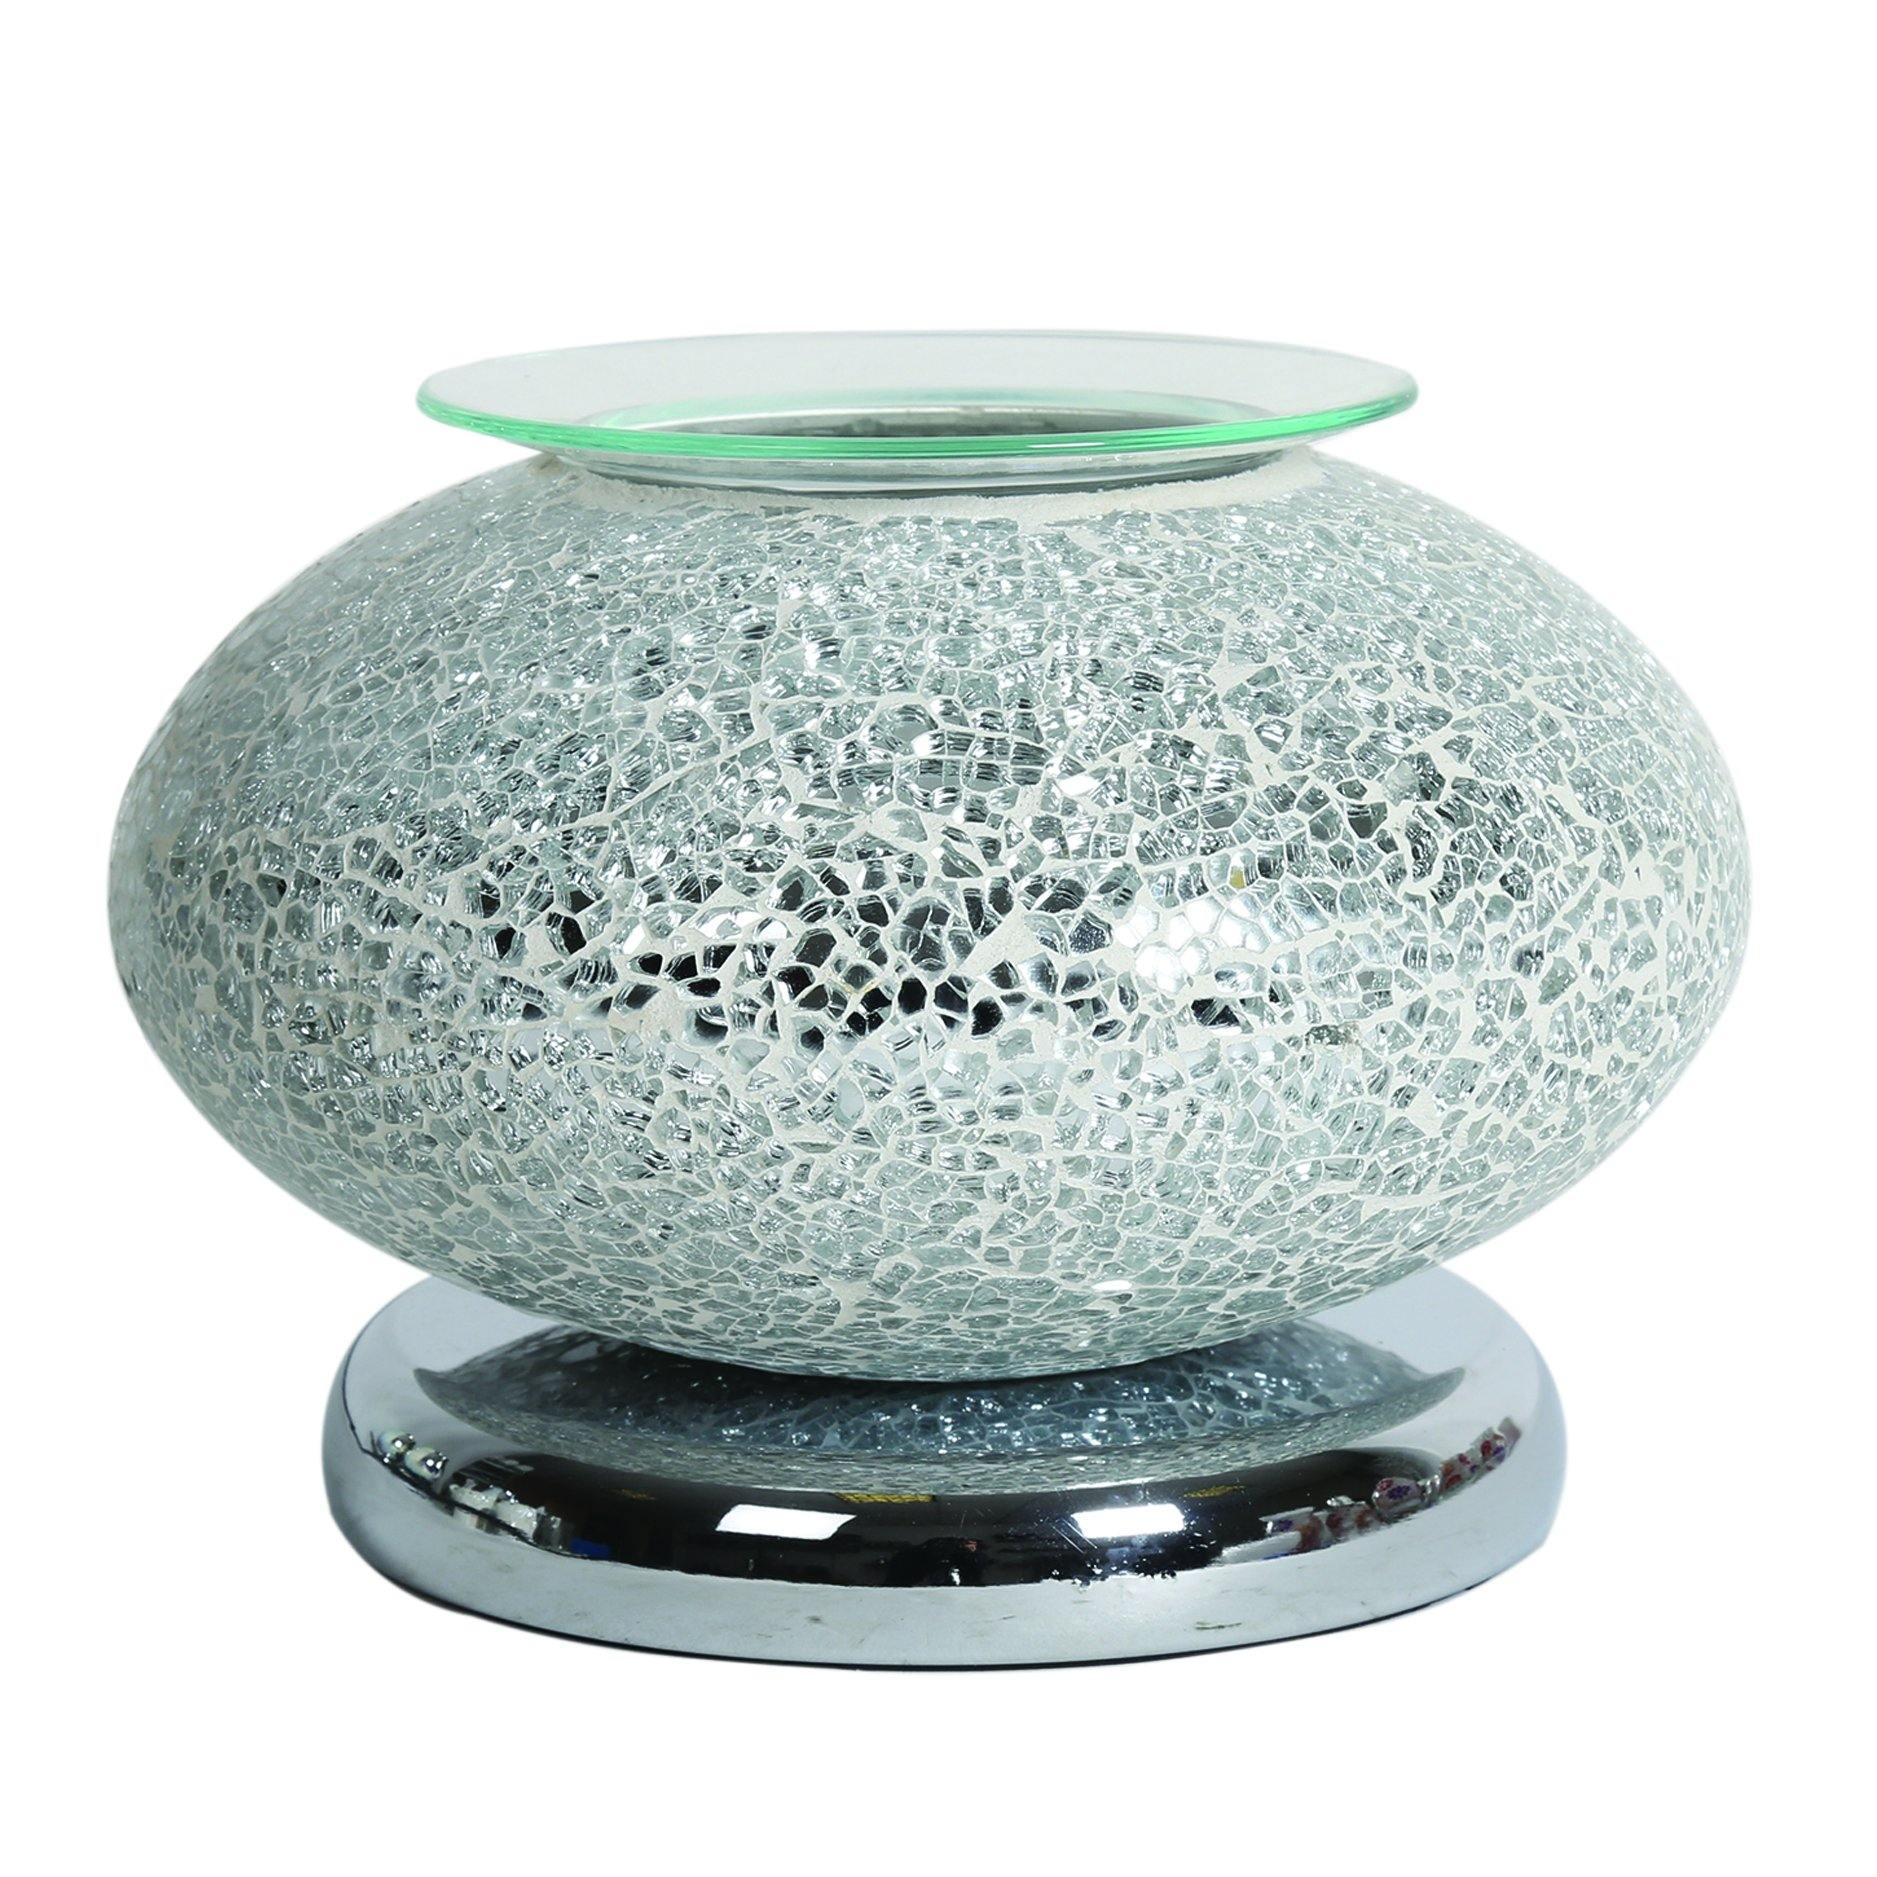 Aroma Accessories Electric Wax Melt Burner Touch - Silver Mosaic Ellipse - TOSYS Candles and Gifts